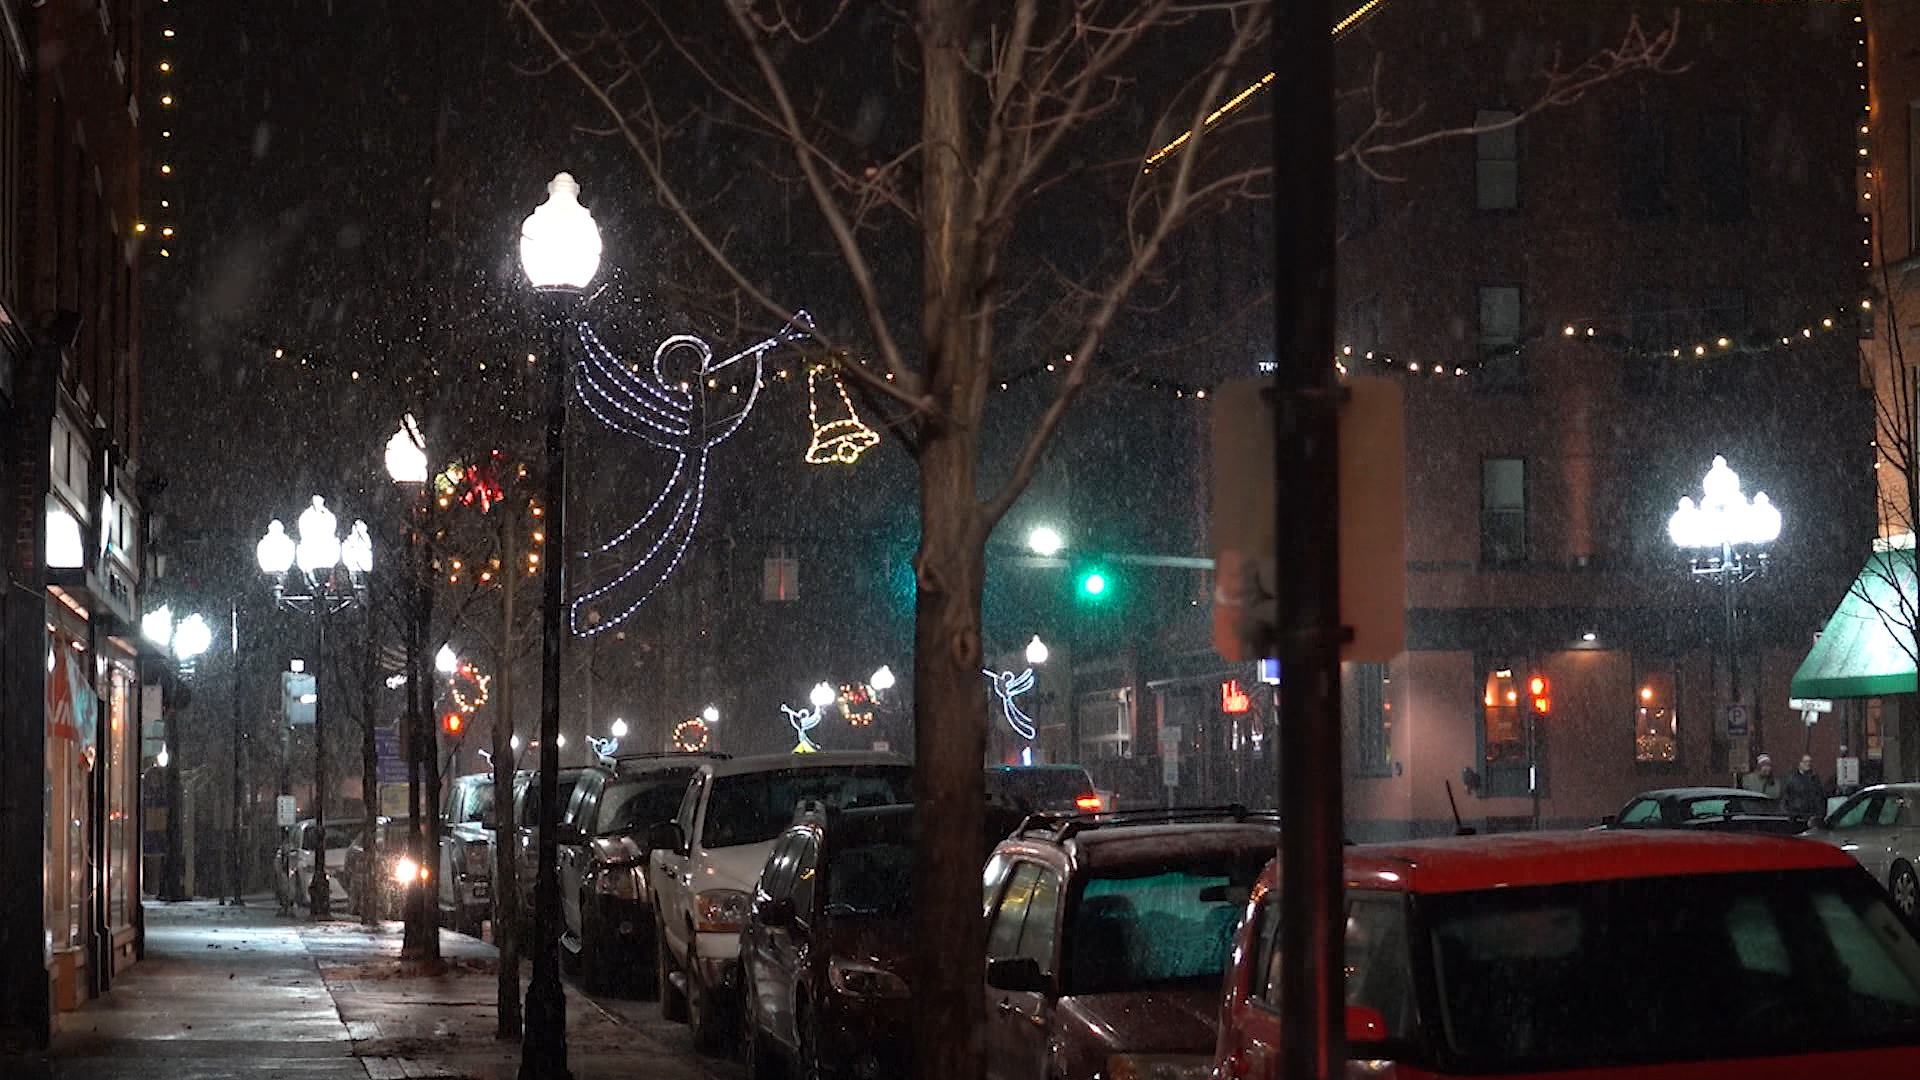 Nighttime on town street, lined with parked cars and Christmas lights.